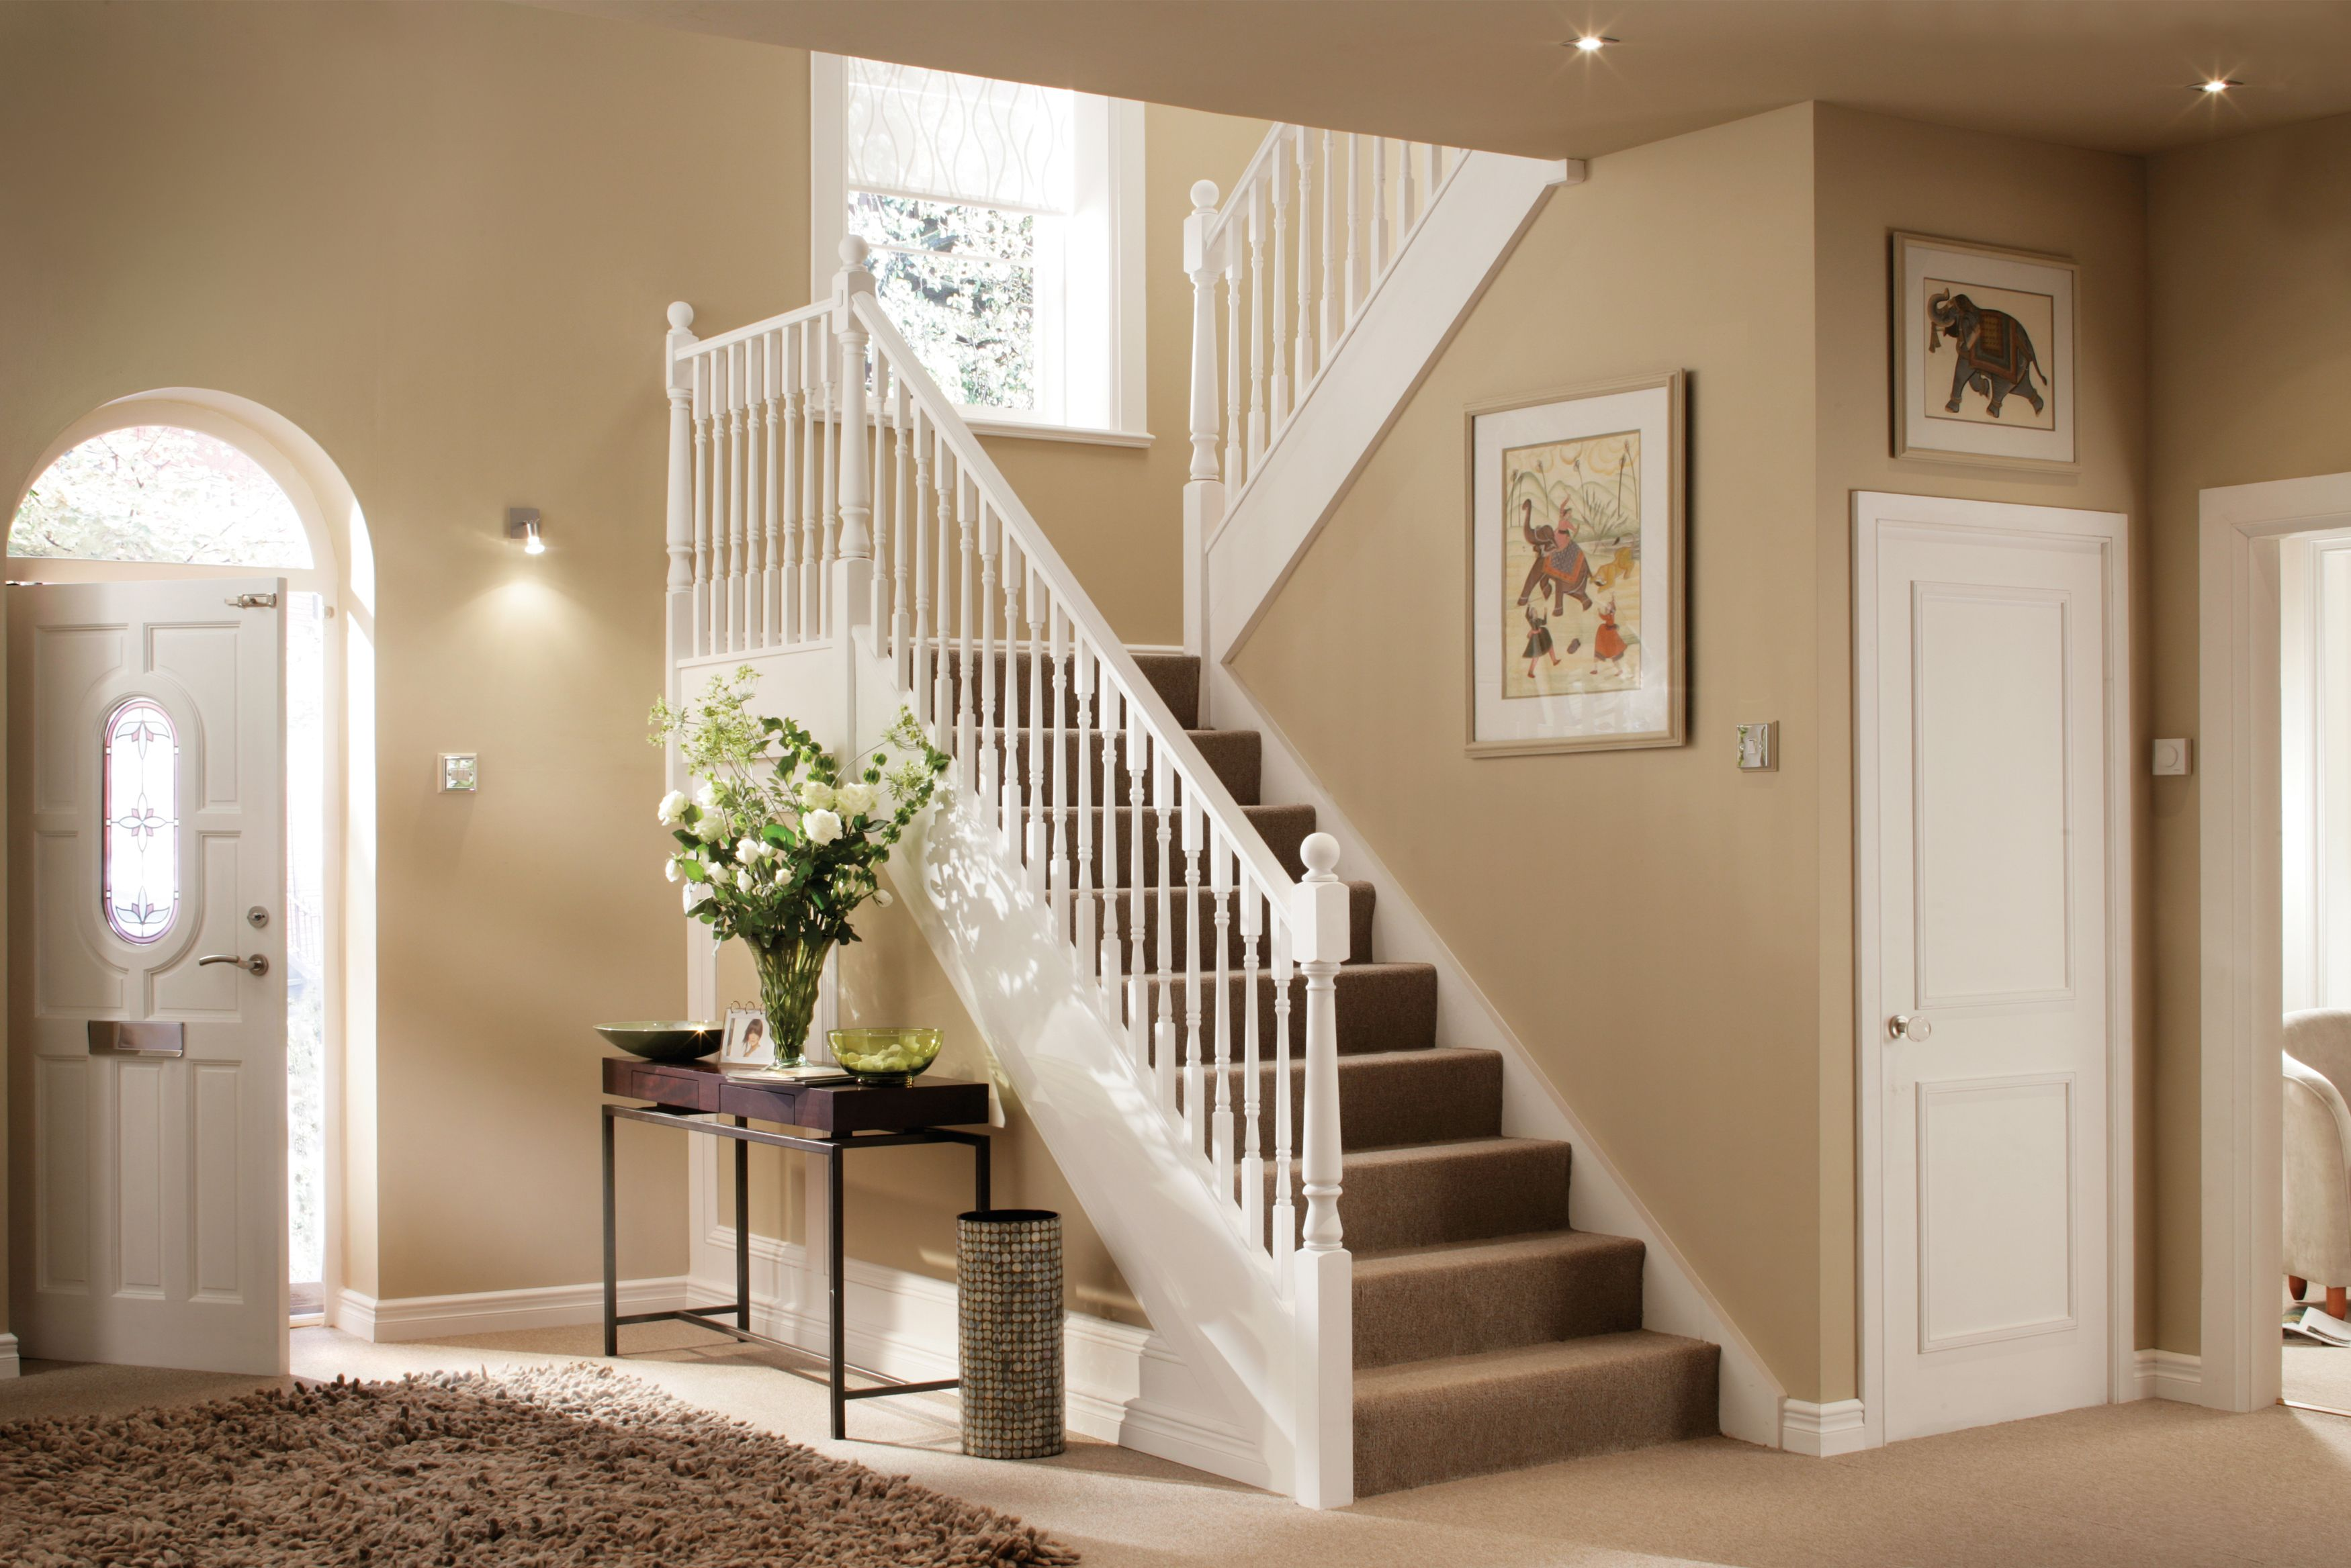 Lighting Basement Washroom Stairs: Download Wallpaper For Hall And Stairs Ideas Gallery